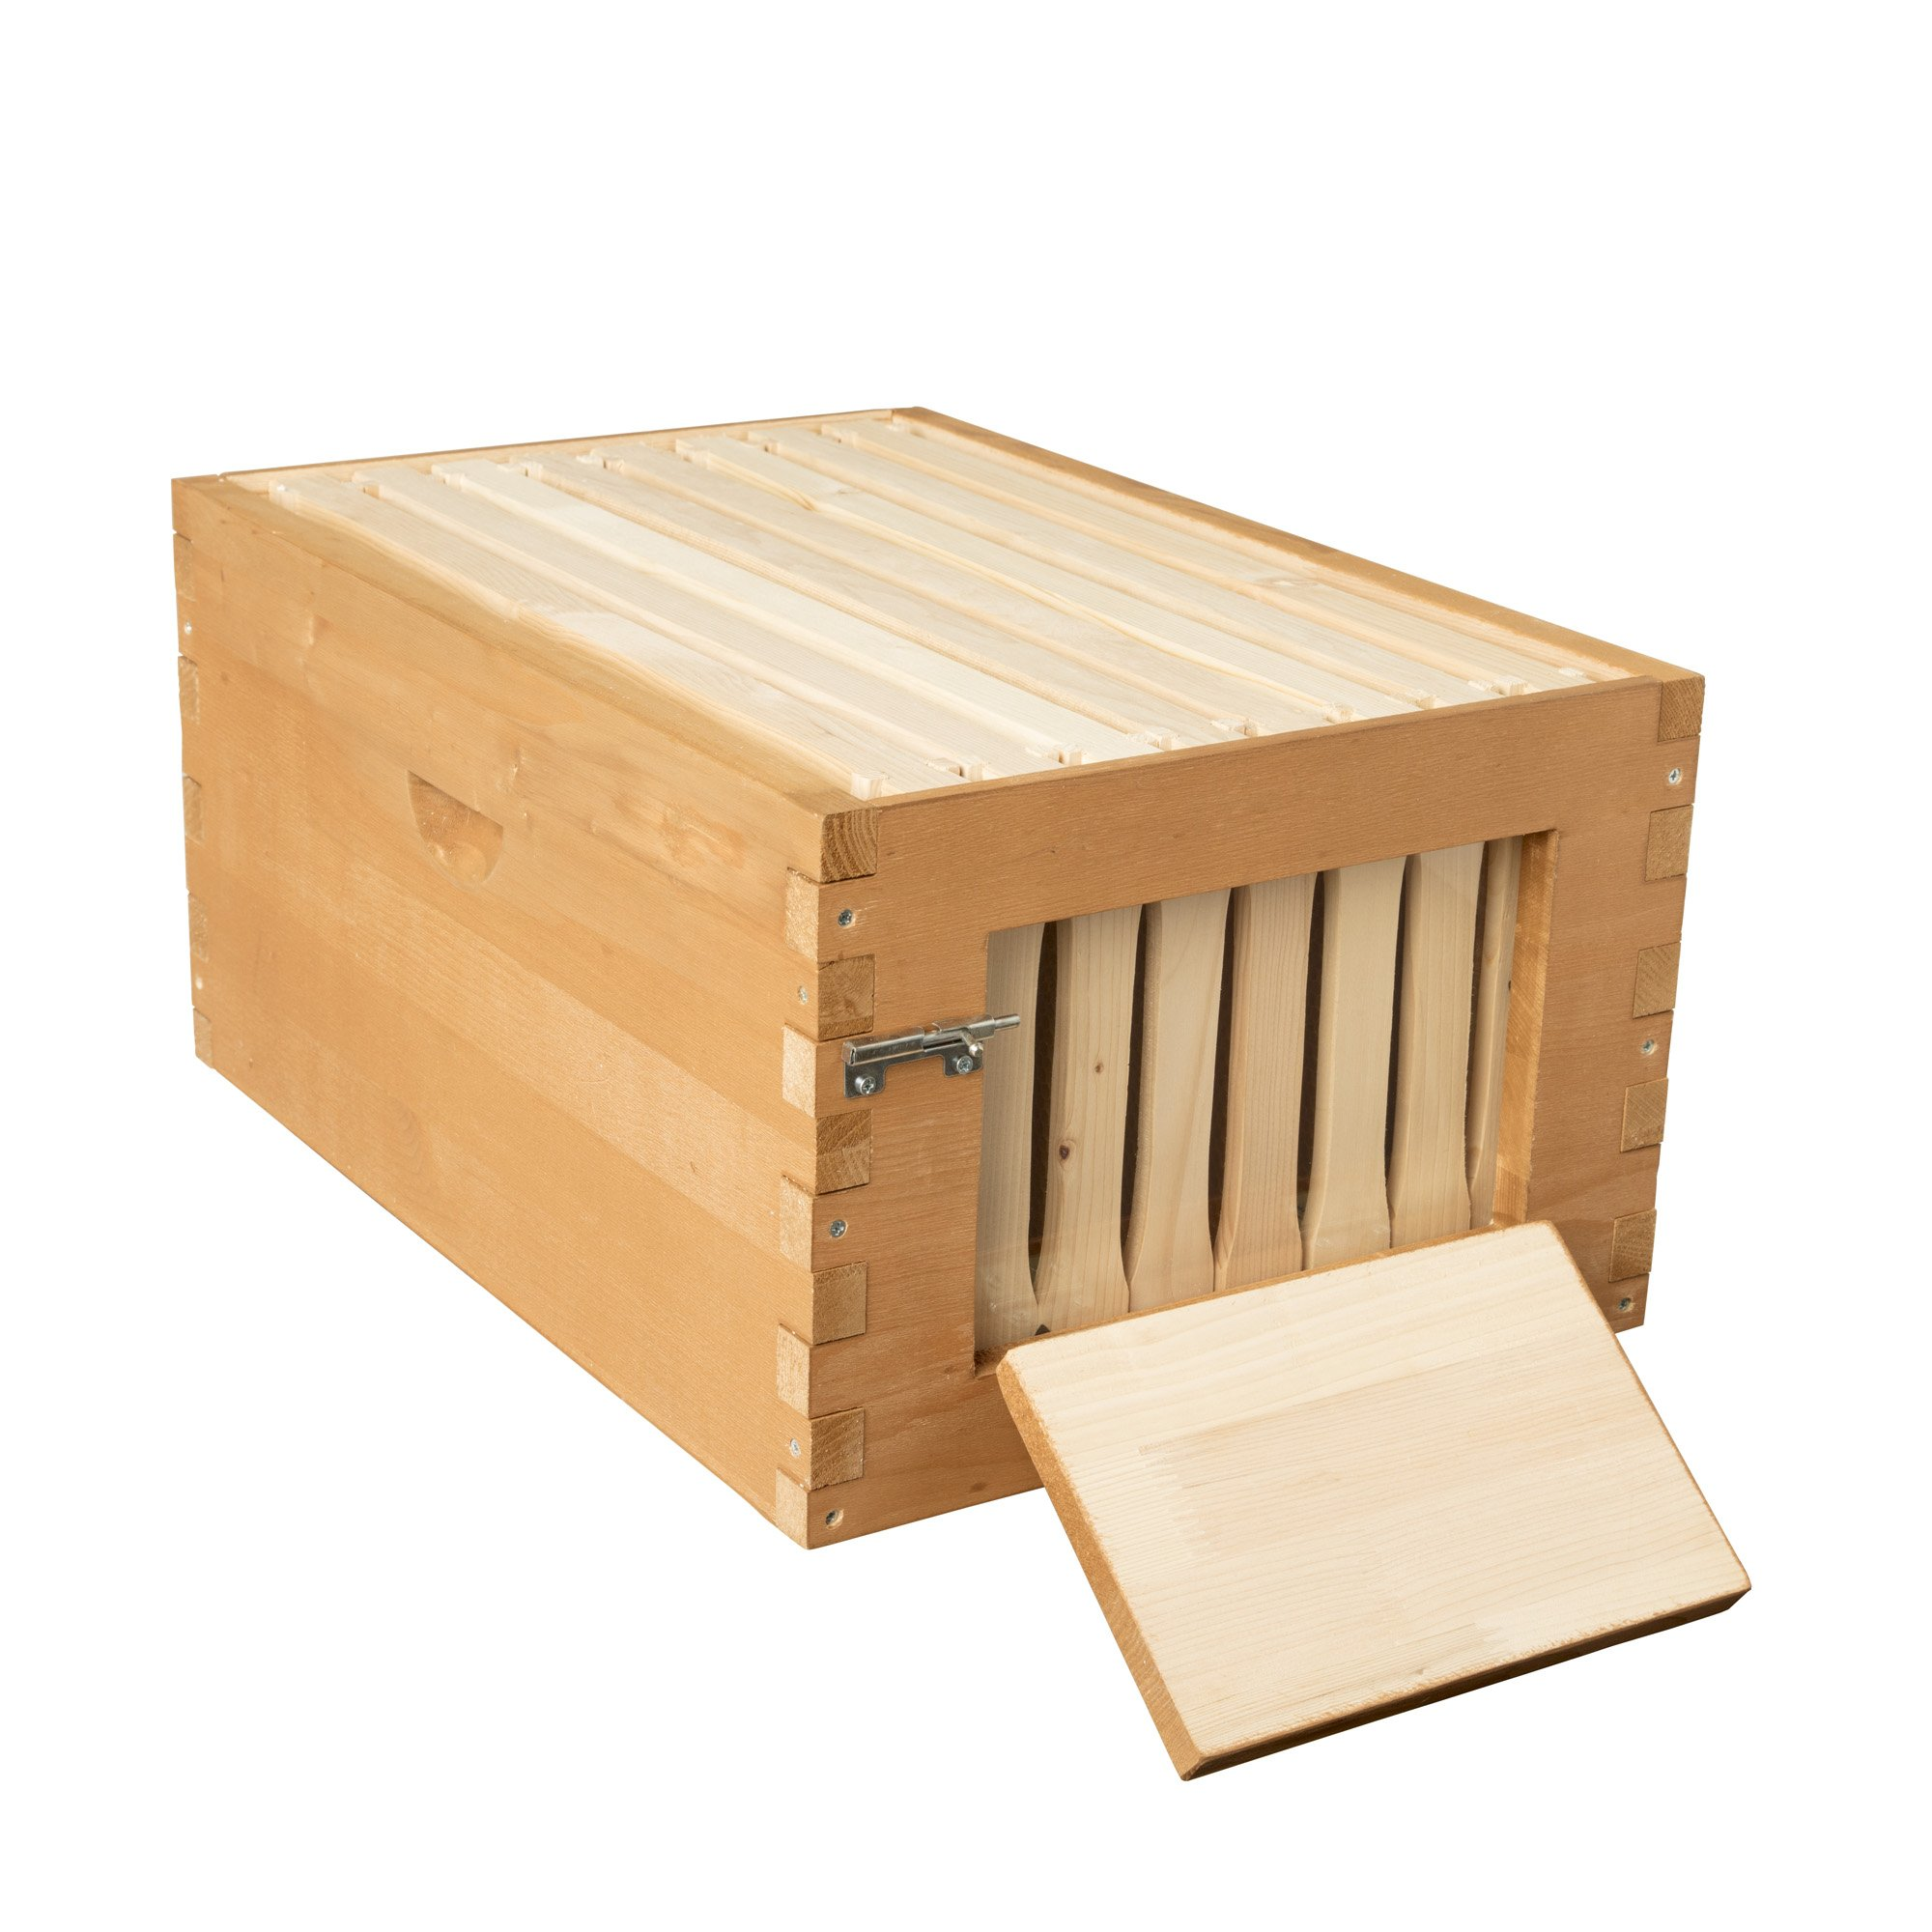 SummerHawk Ranch Quick-Check Super, 3-Year Warranty - Includes Quick Check Frames, Honeycomb Foundation, Great for Backyard Bee hive Extension, Beekeeping Equipment